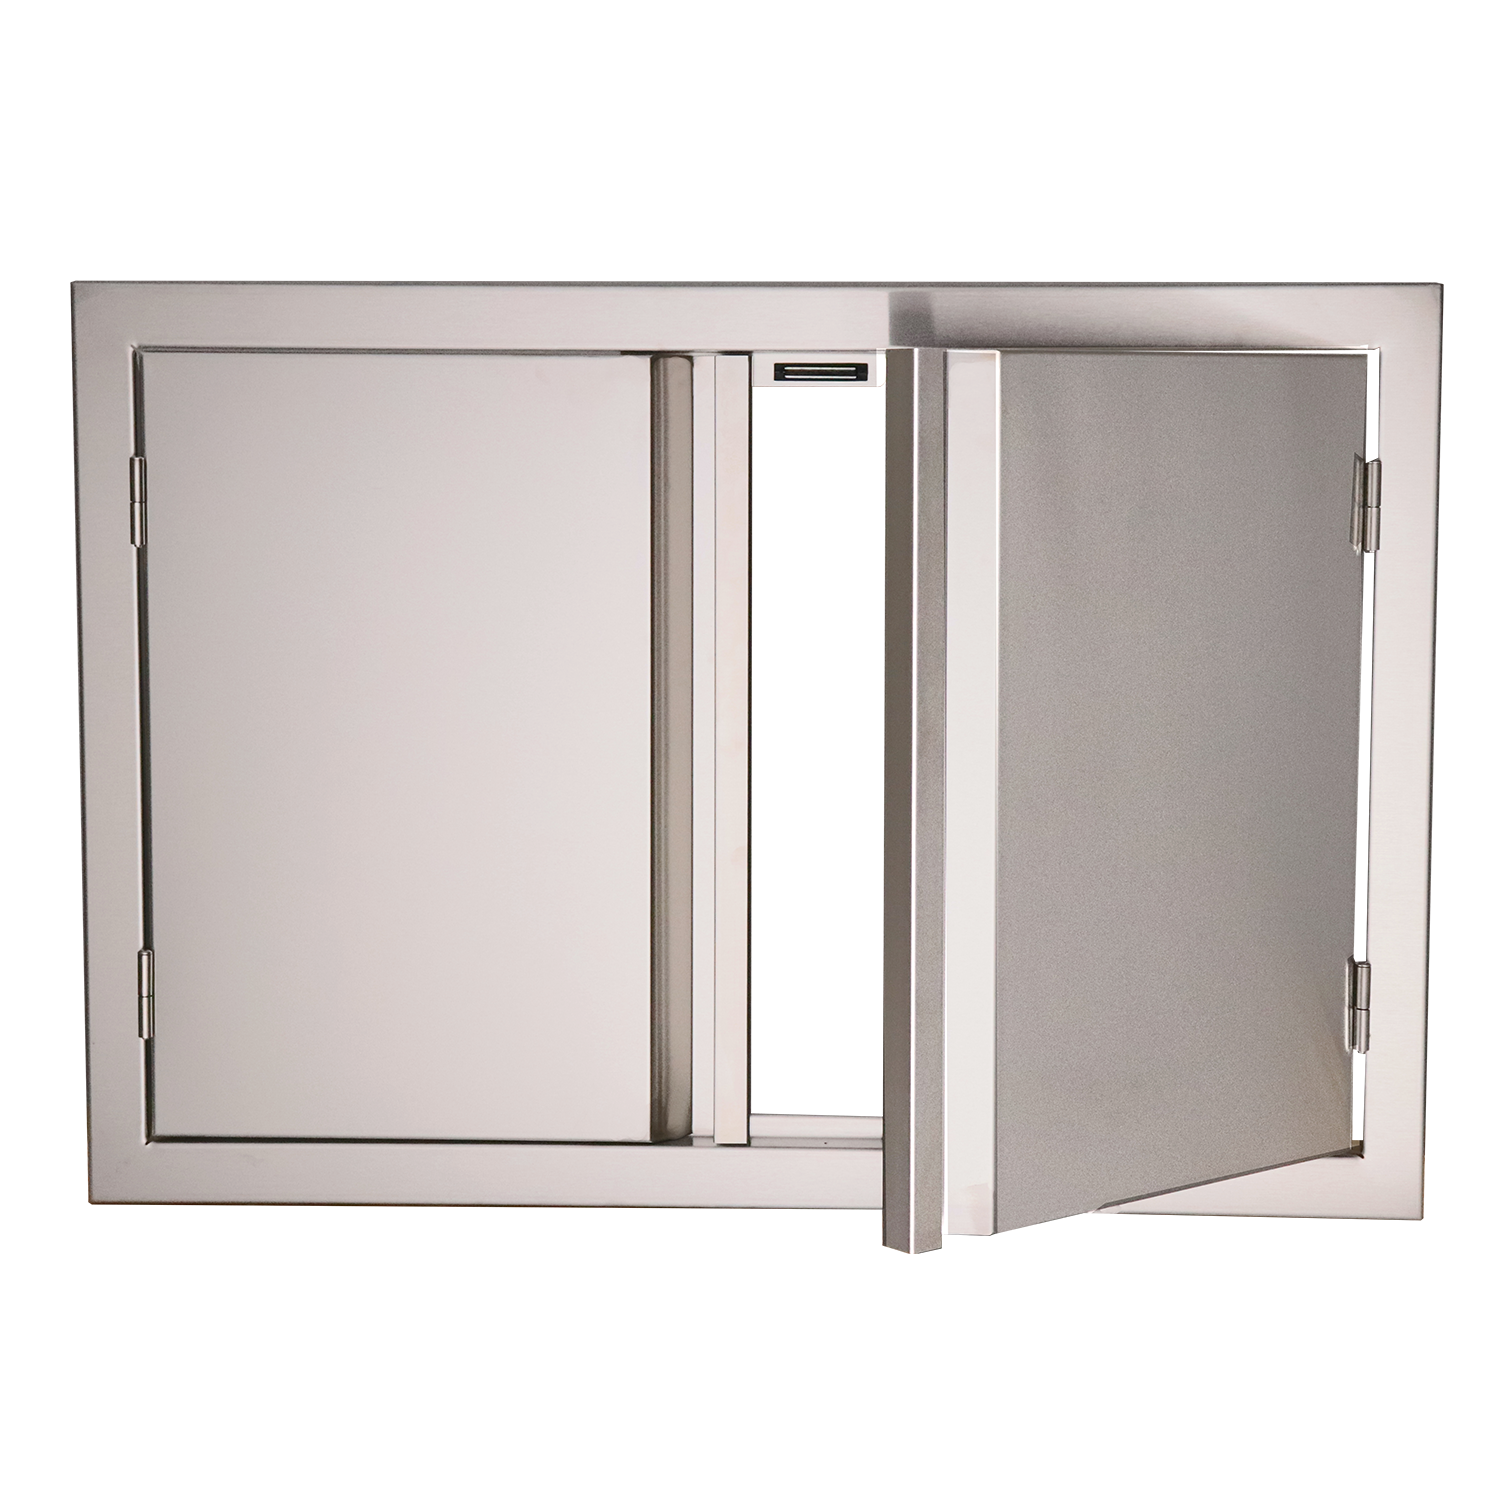 RCS Double Door - Large - VDD2